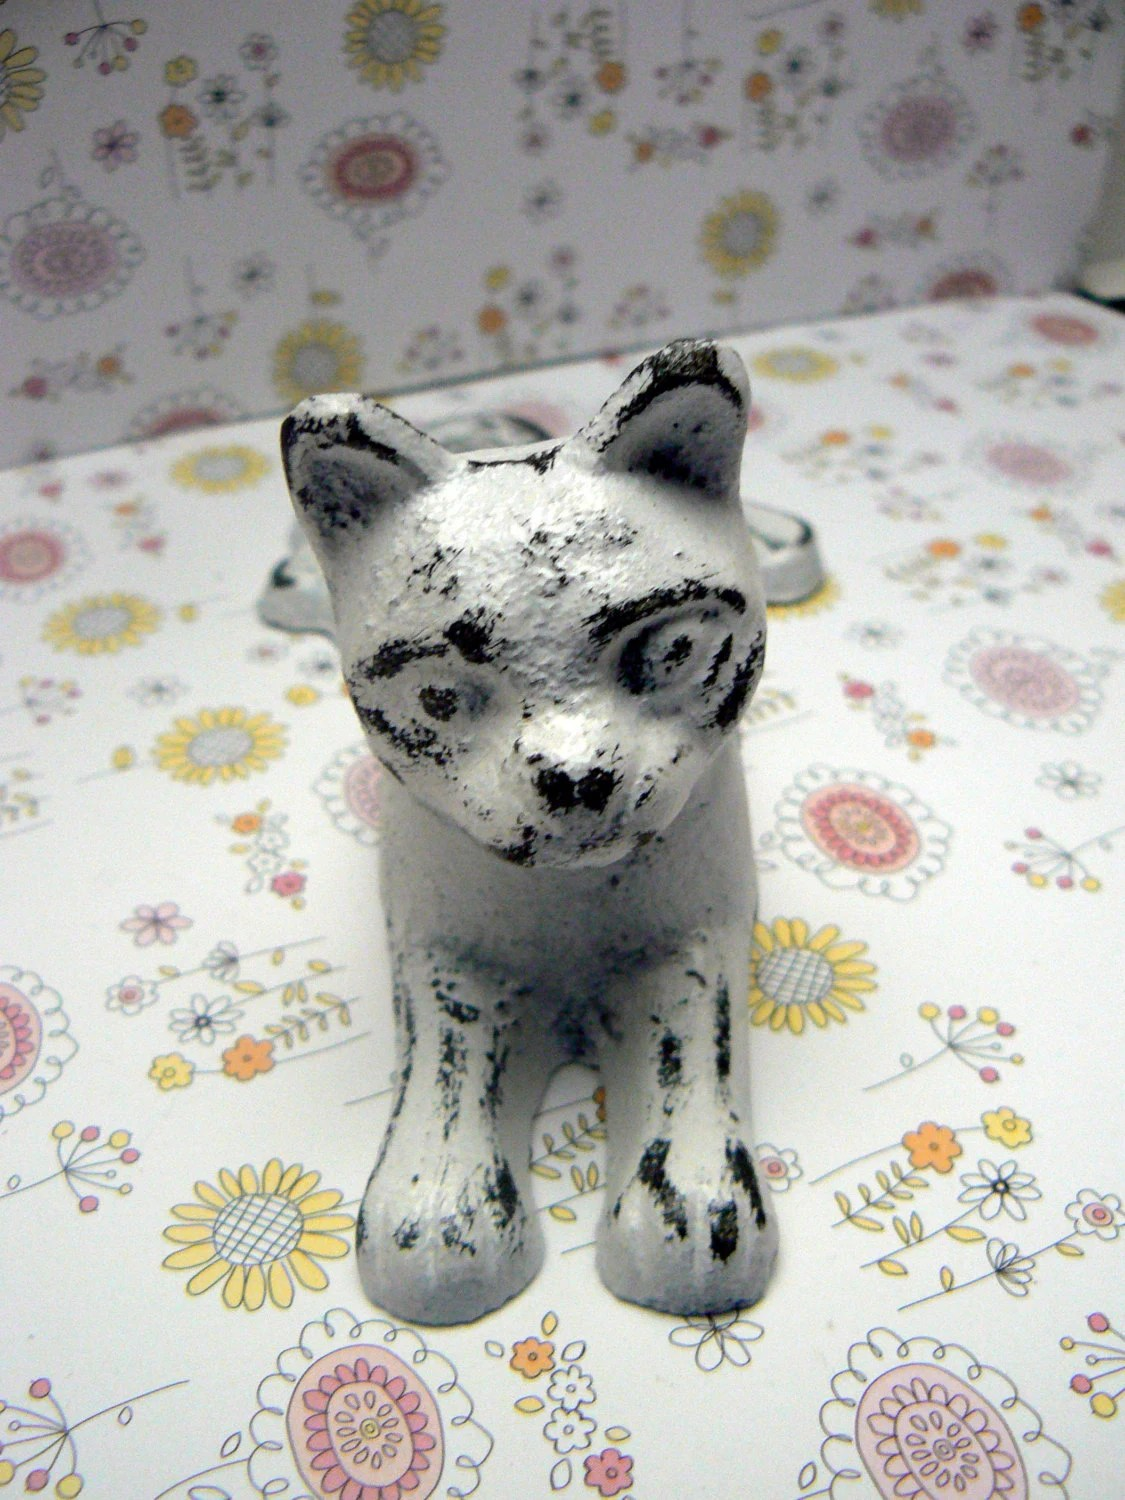 Animal Door Stops Uk Cat Door Stop Cast Iron Shabby Elegance White White Distressed Kitty Kitten Doorstop Prop Animal Feline Vet Office Pet Lover Gift Idea